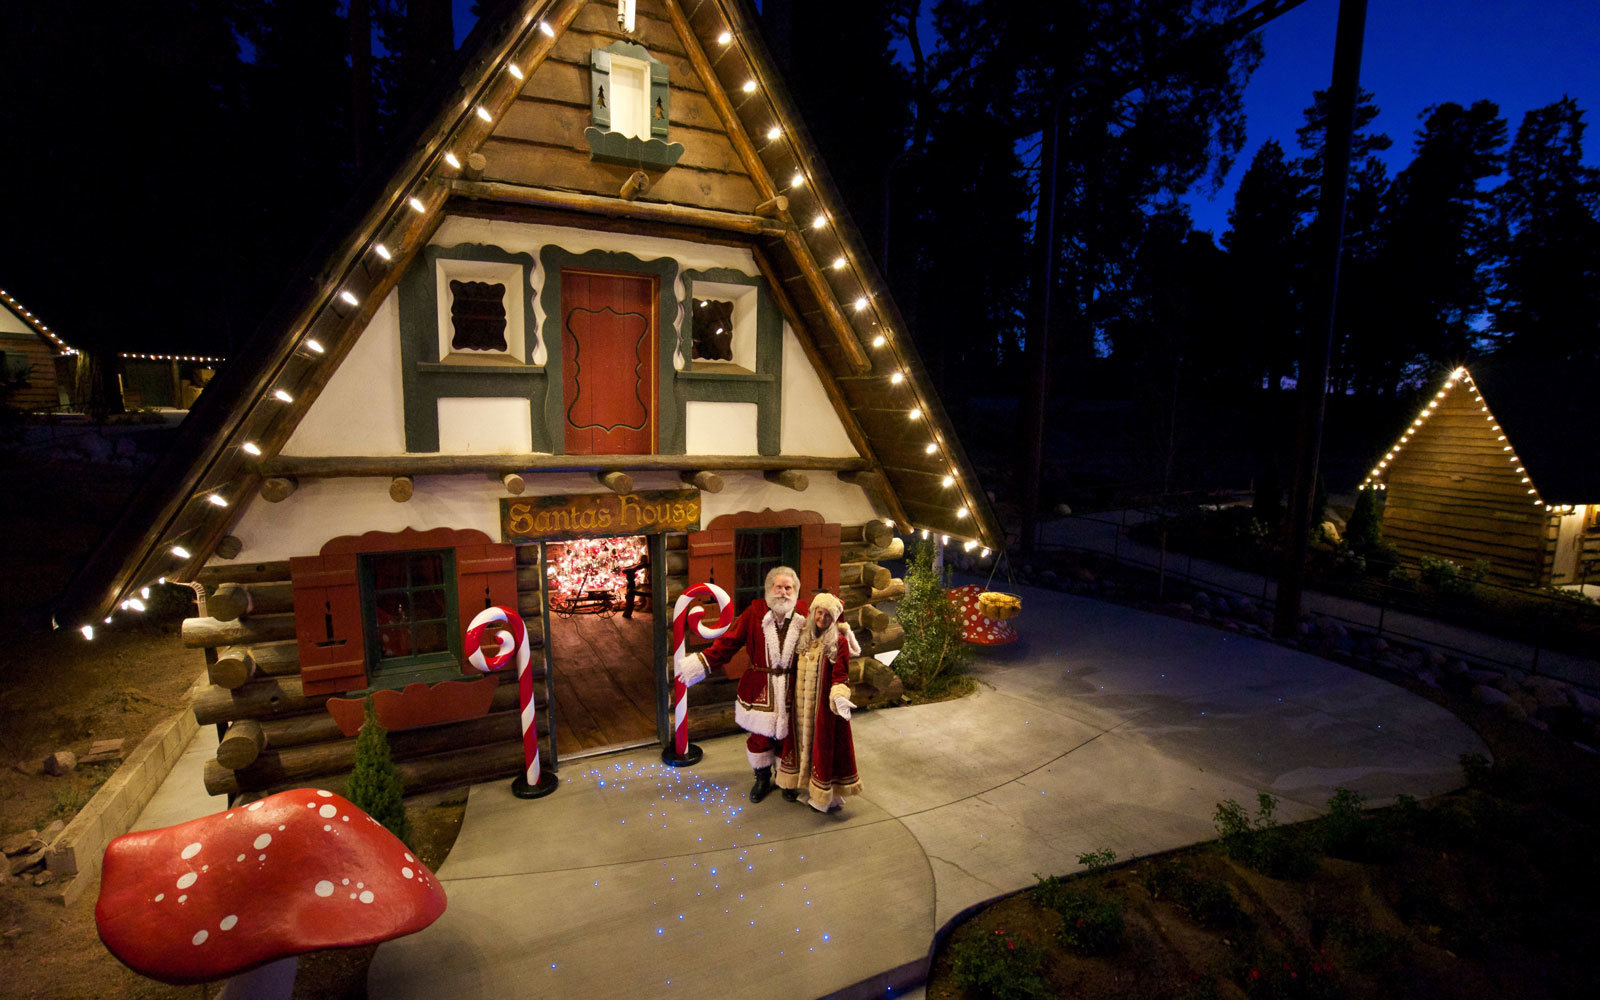 This Christmas Amusement Park From The 1950s Is Reopening